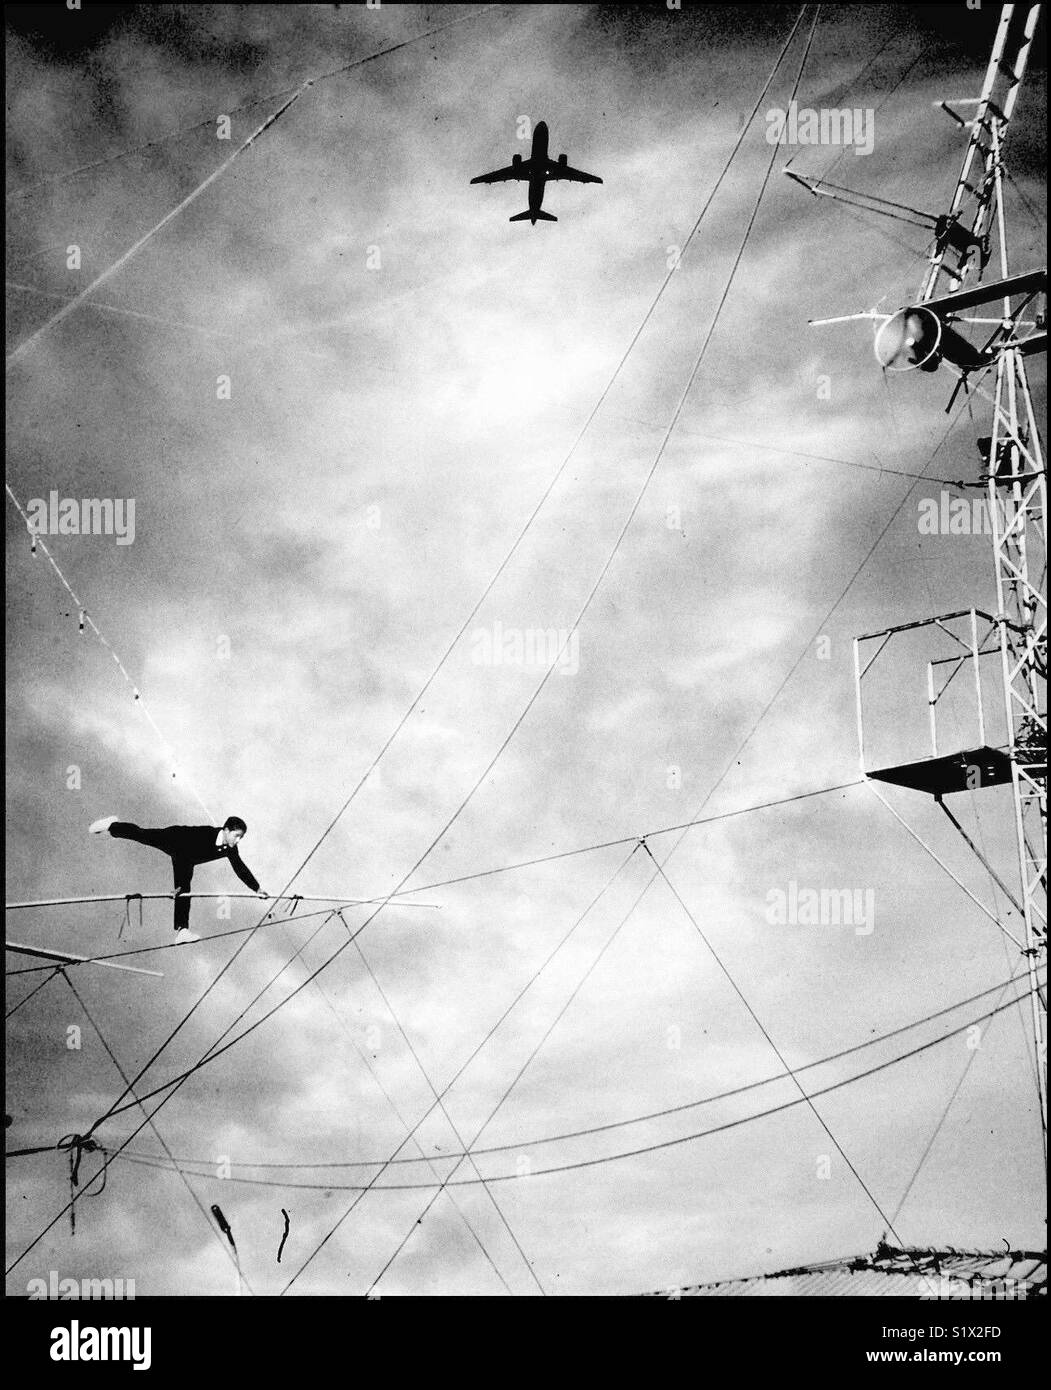 Wire Walker Stock Photos & Wire Walker Stock Images - Alamy